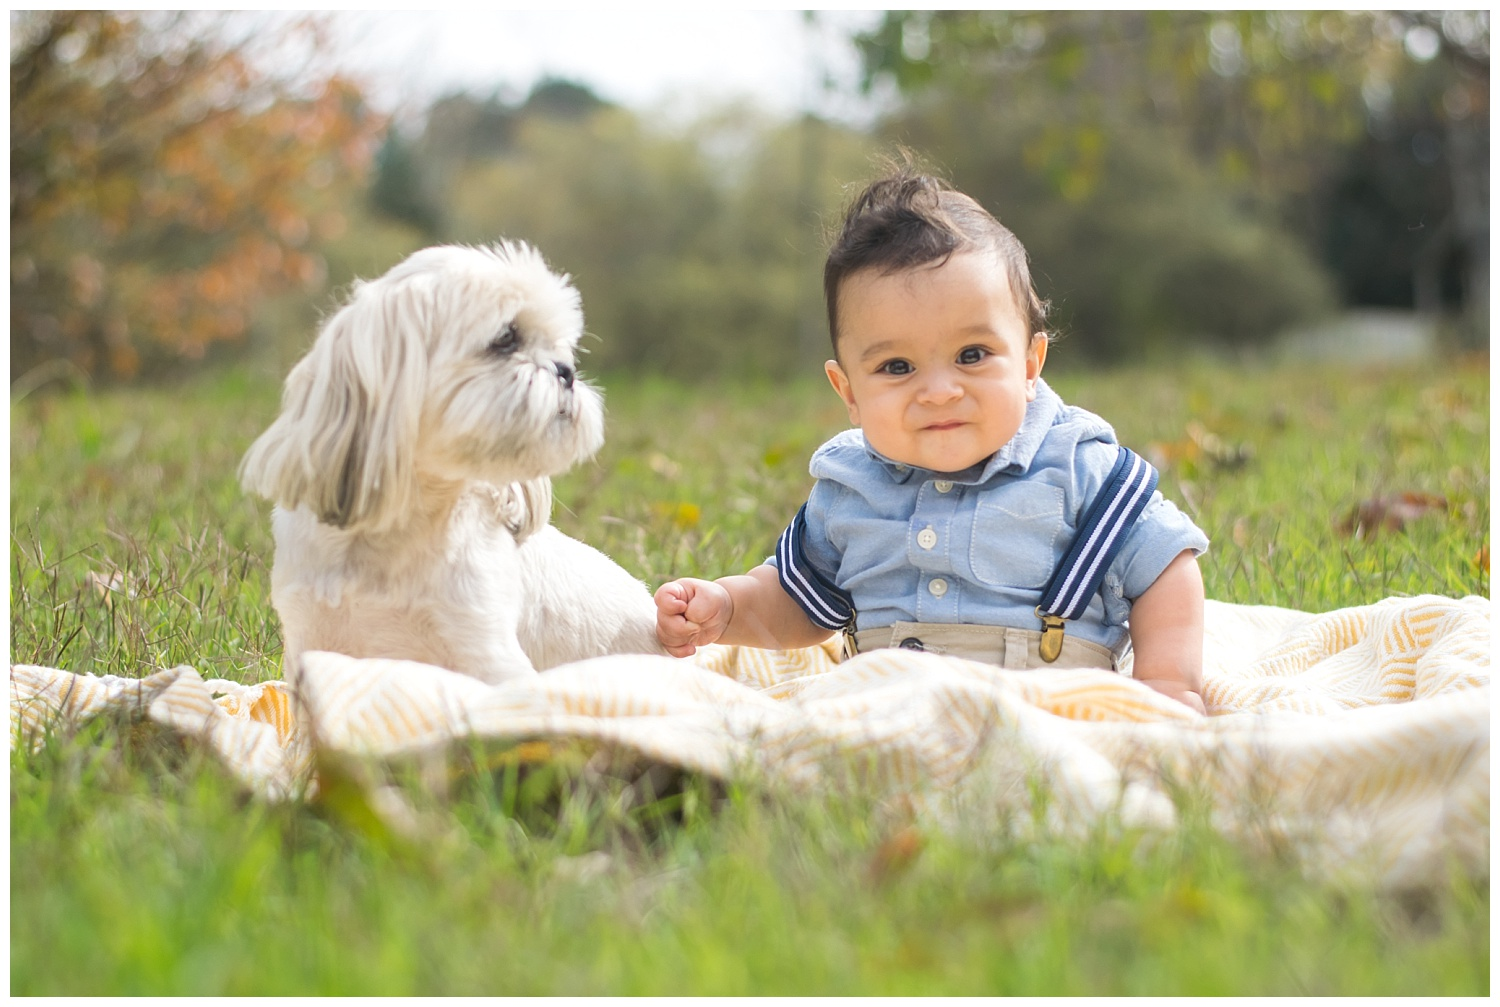 this is an image of a six month old baby boy sitting outside on a blanket next to their family dog. the child is smiling and looking at the camera.